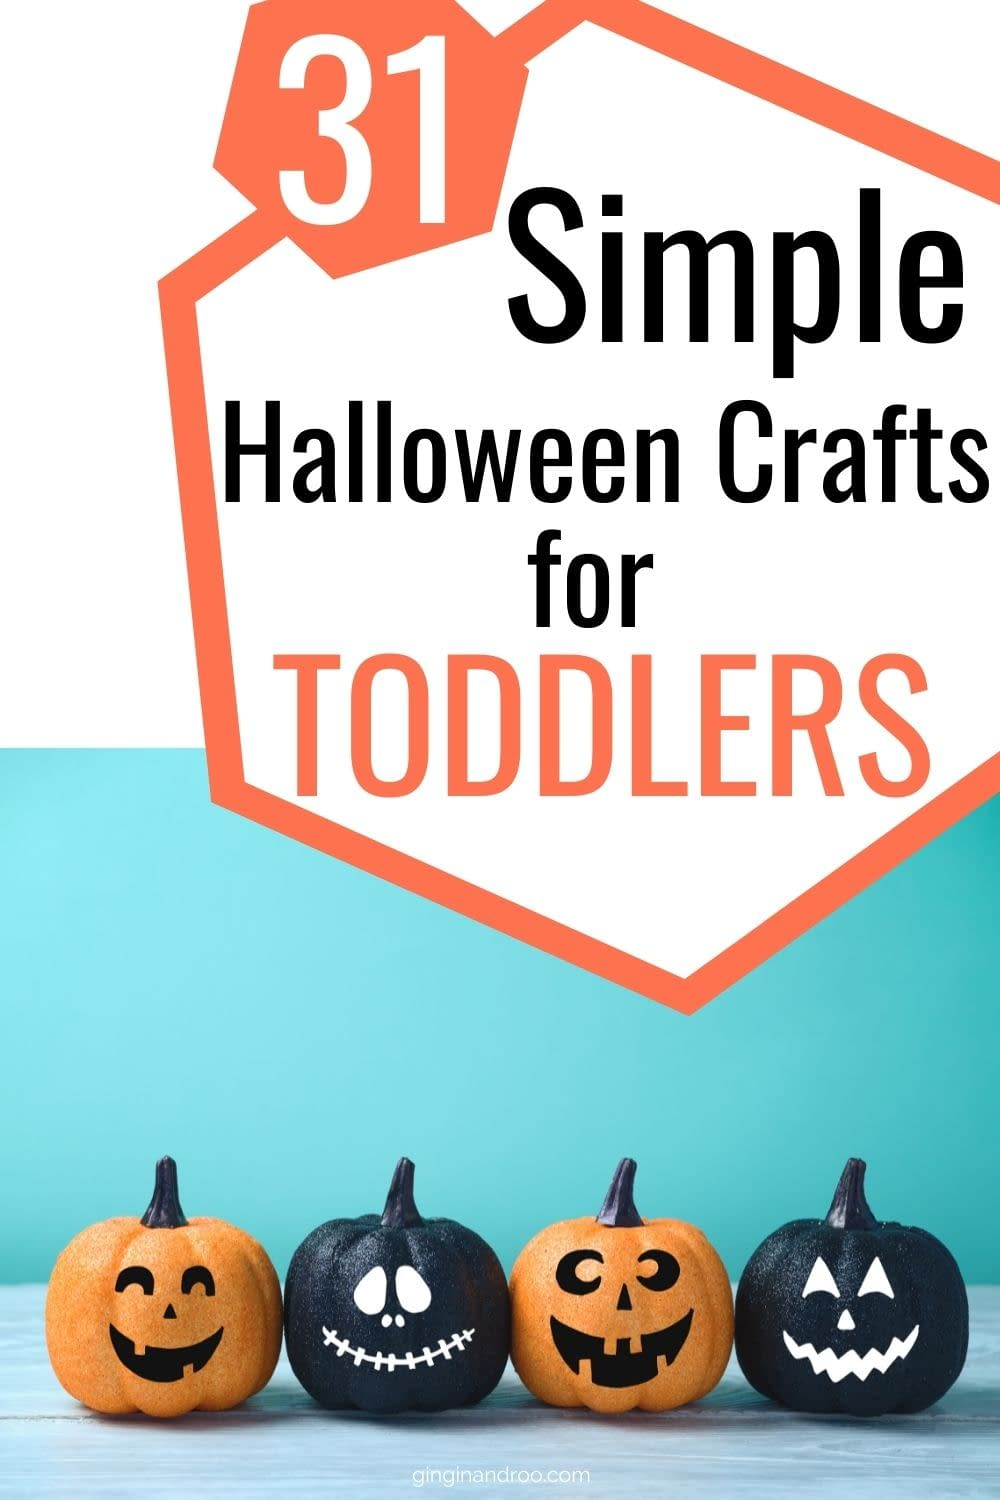 31 Simple Halloween Crafts for Toddlers